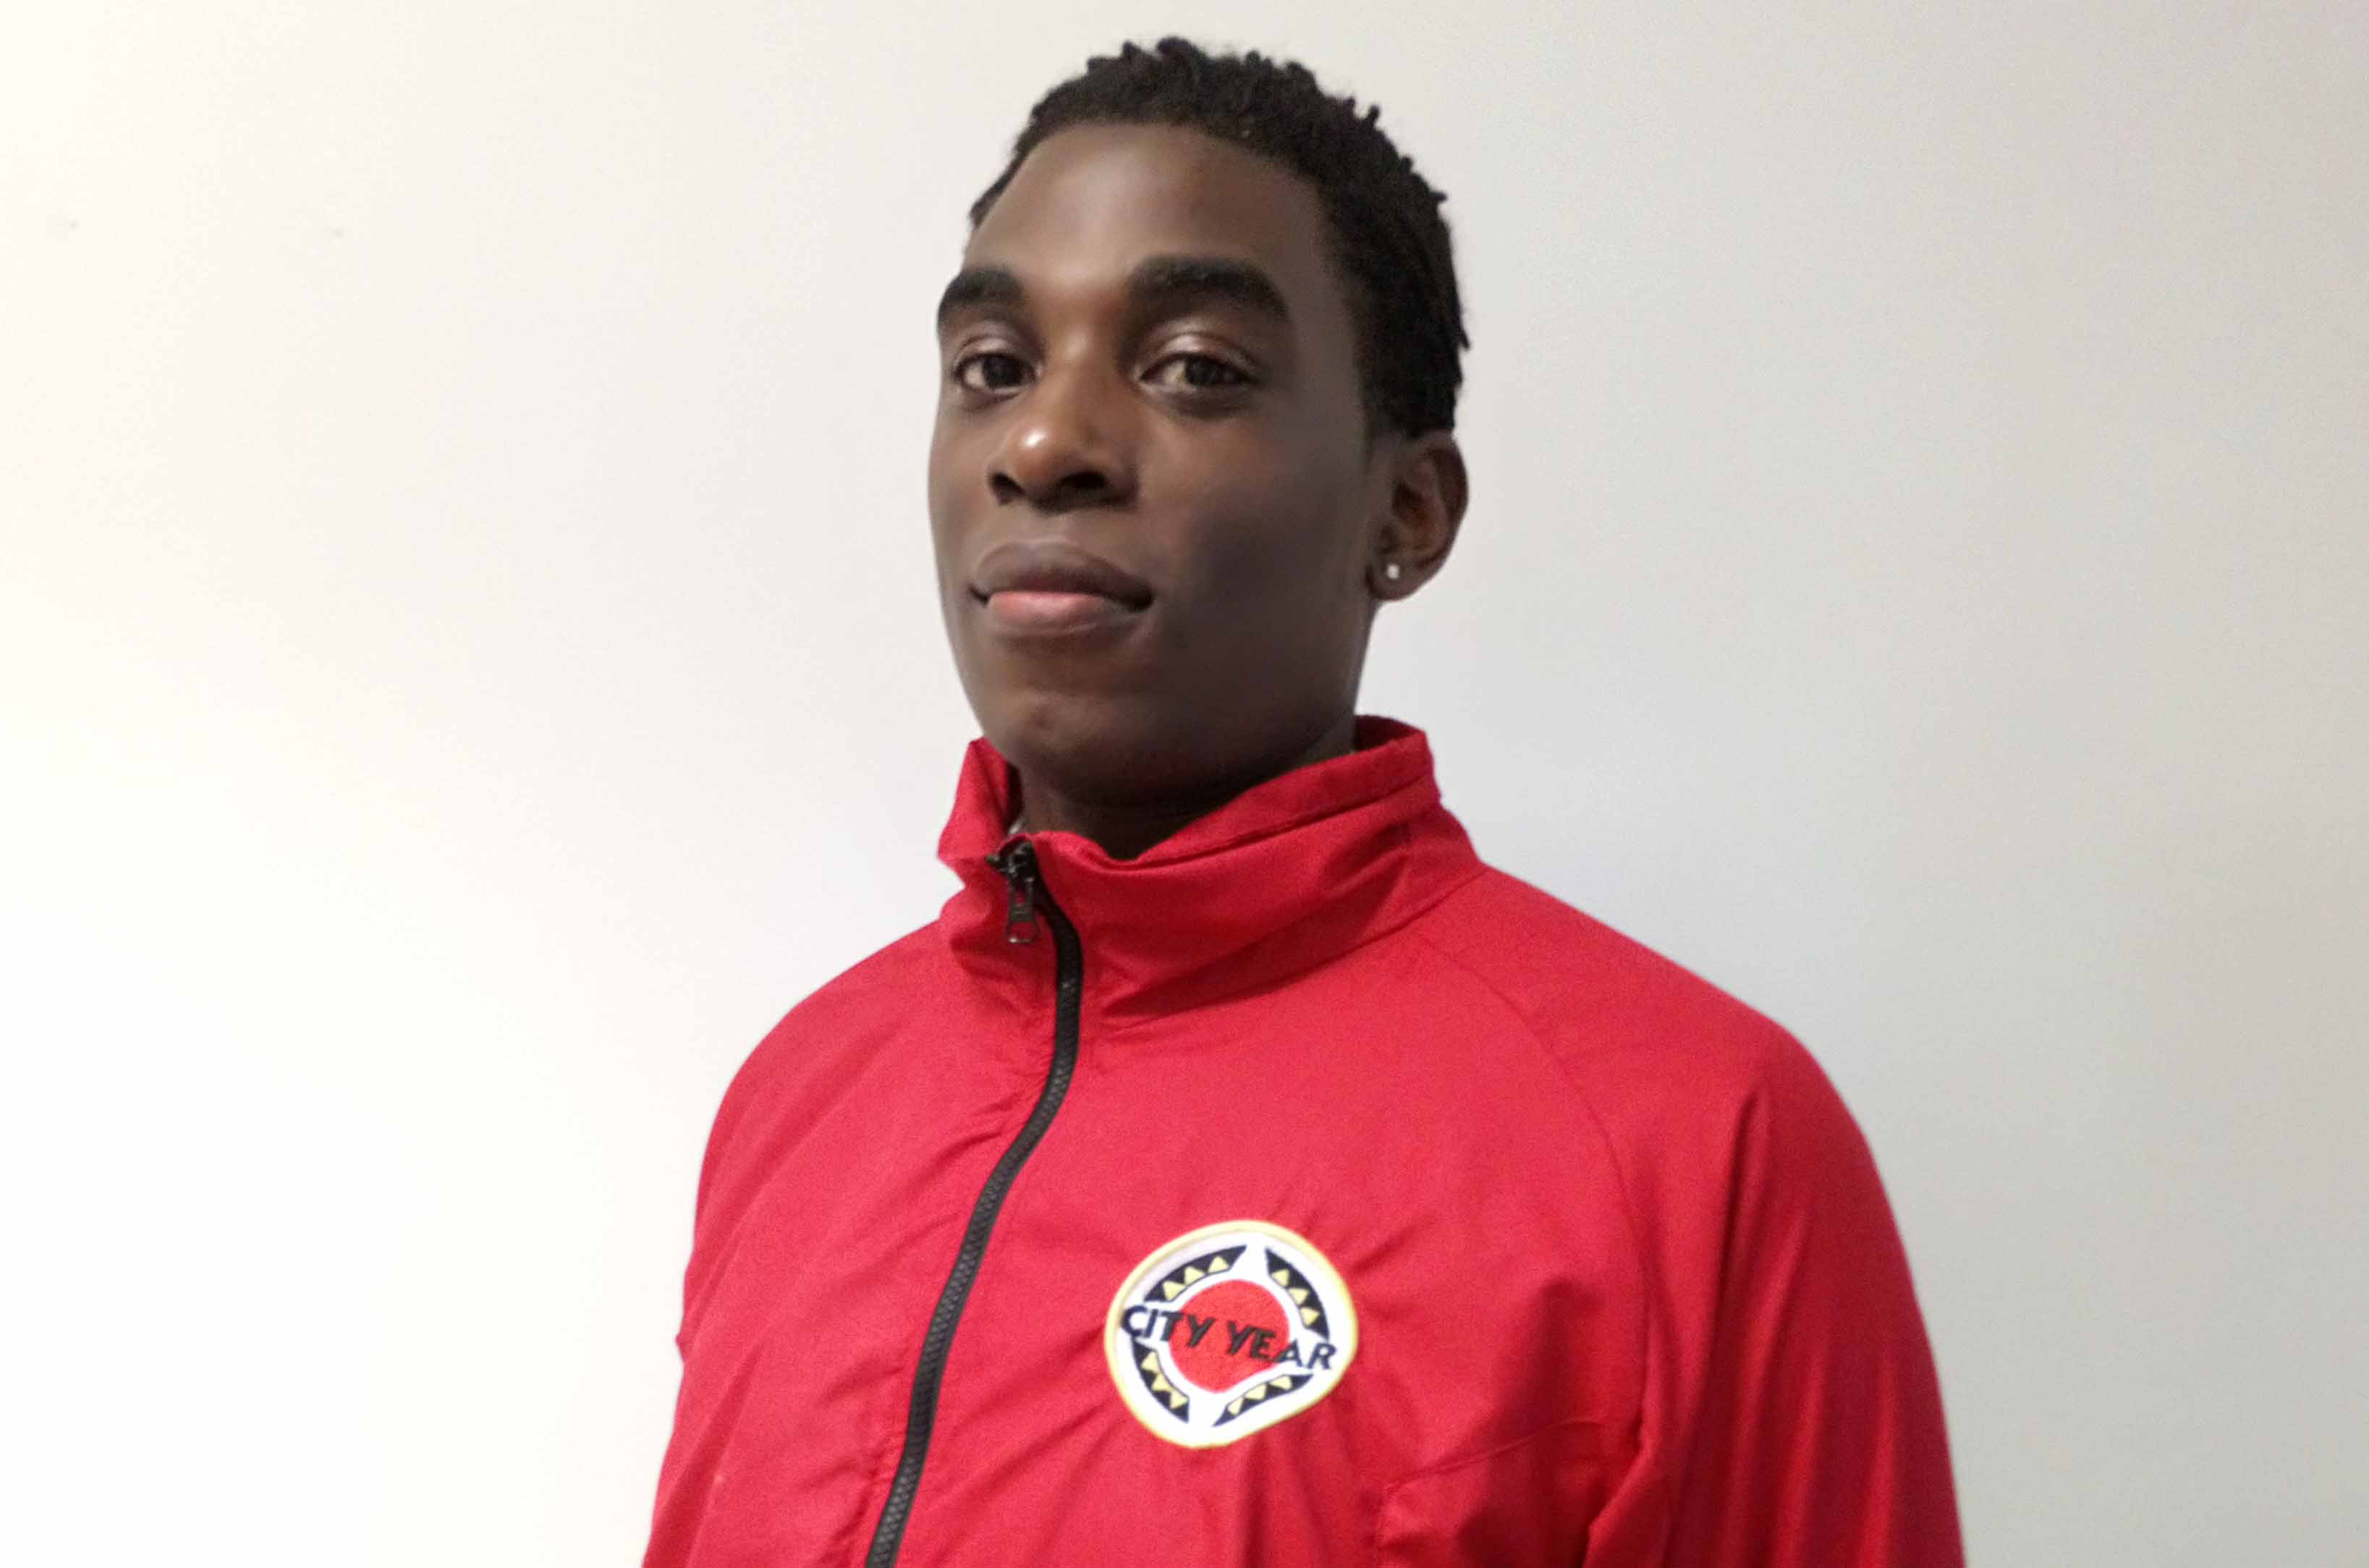 City Year Corps Member of the Month - June 2018: Nazir Corriette